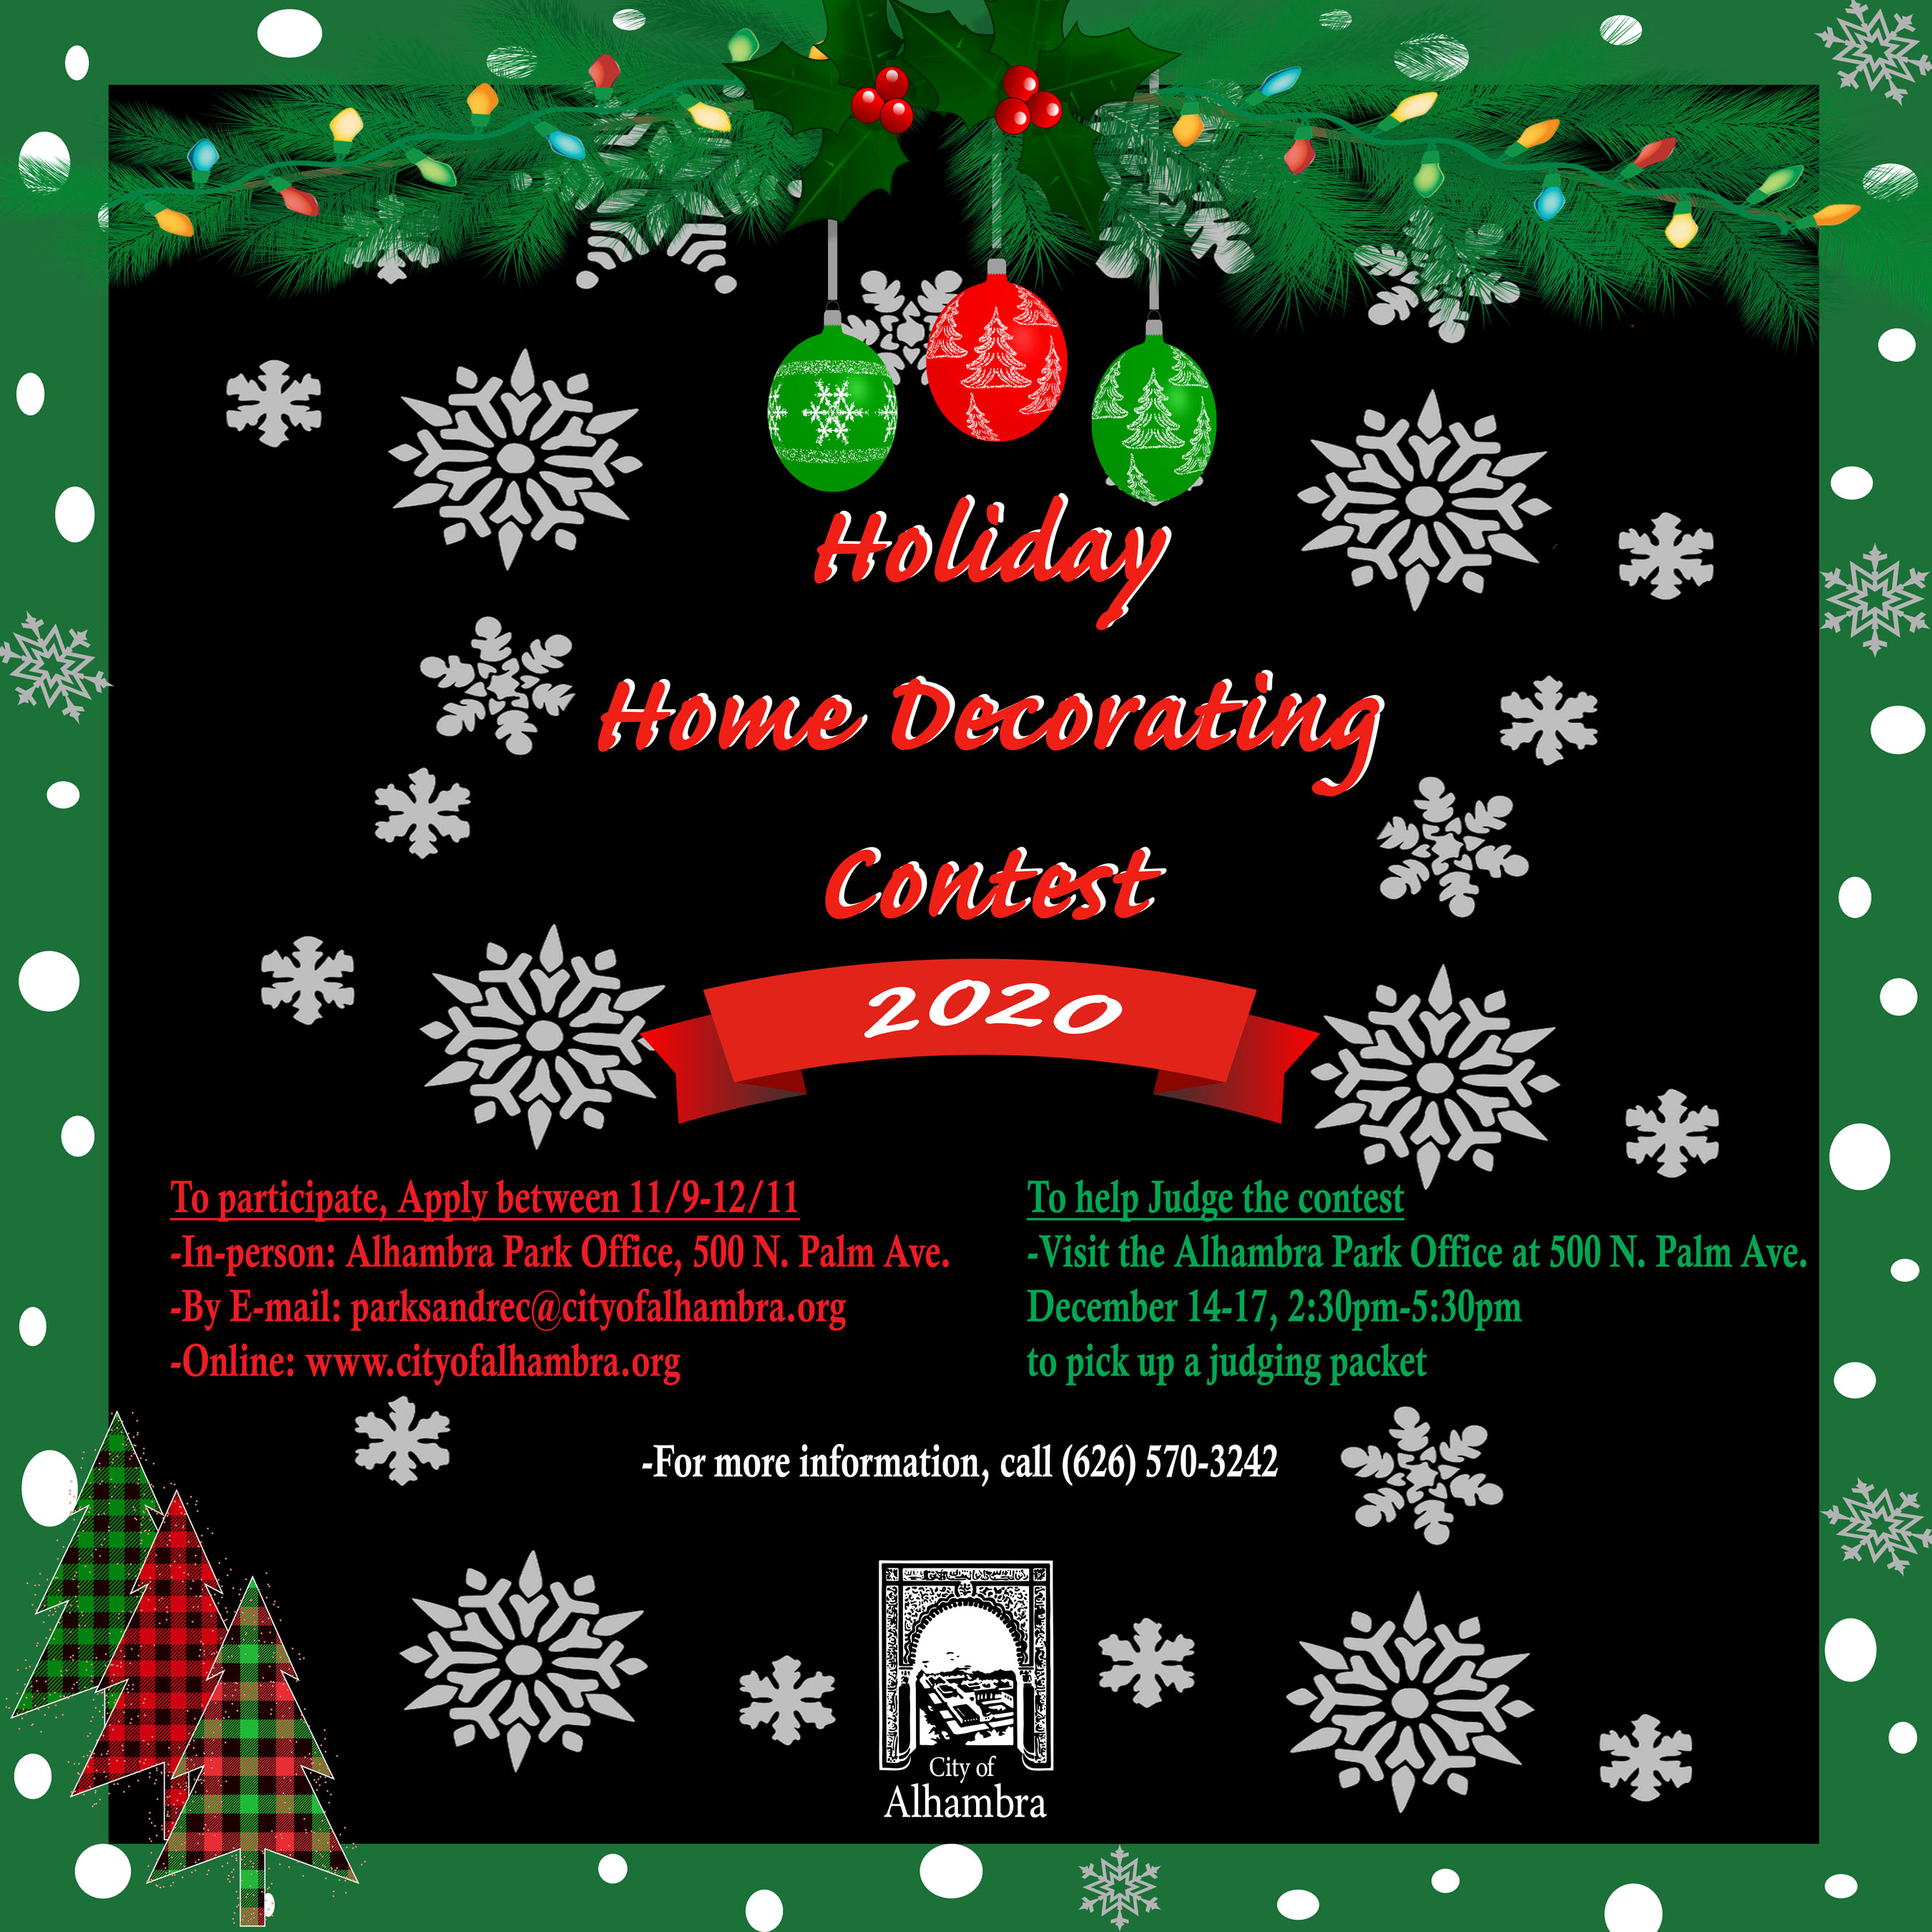 photo showing info on holiday home decorating judging